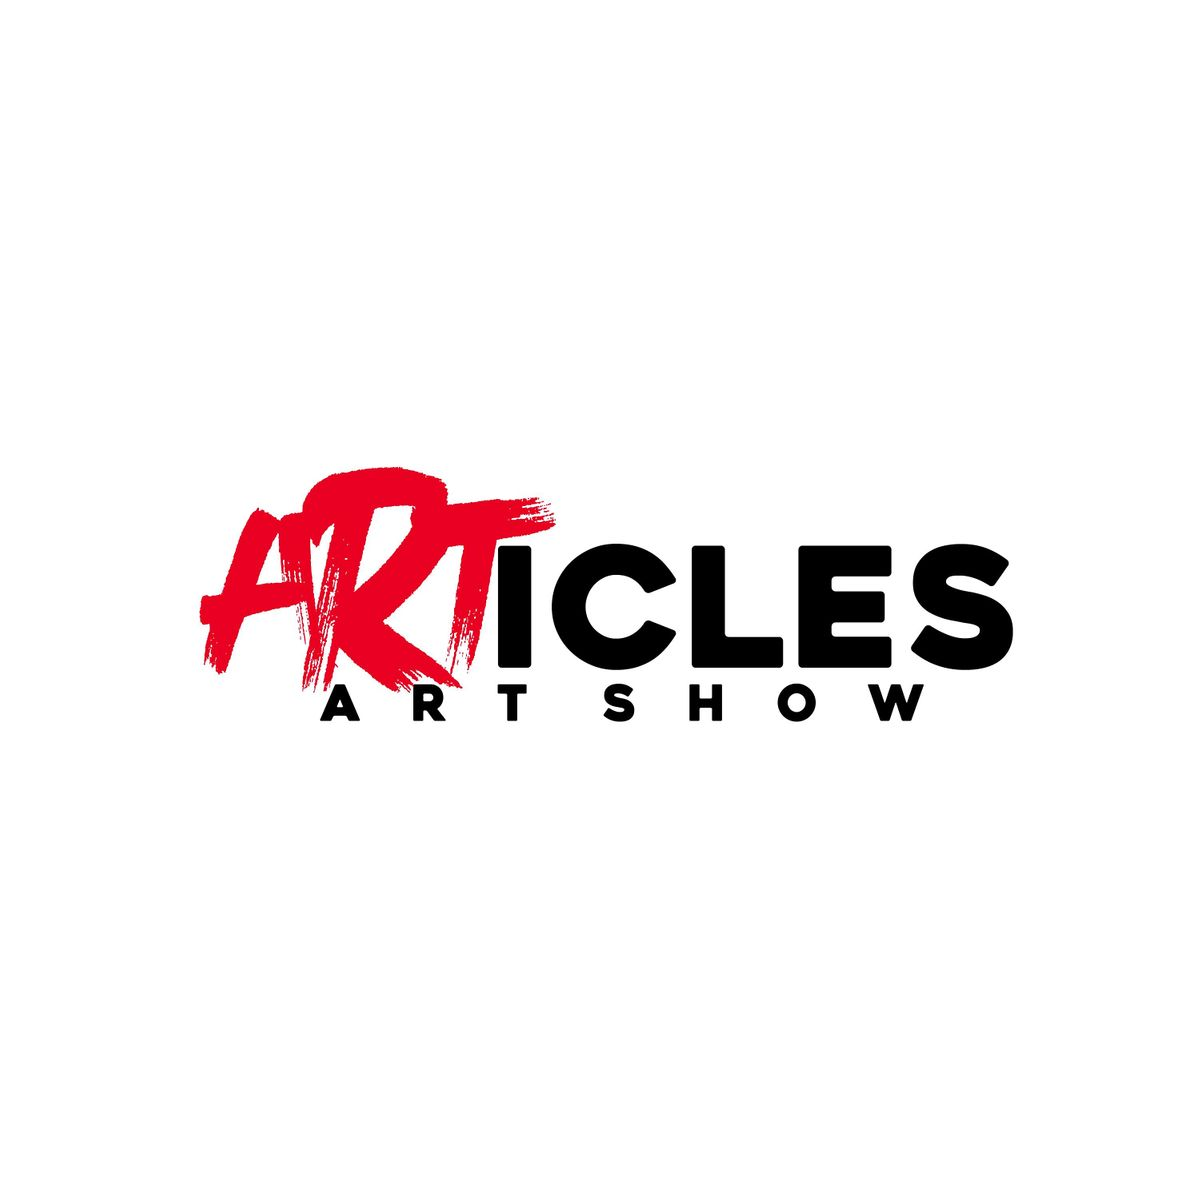 ARTicles - Urban Art Show, 21 May | Event in London | AllEvents.in